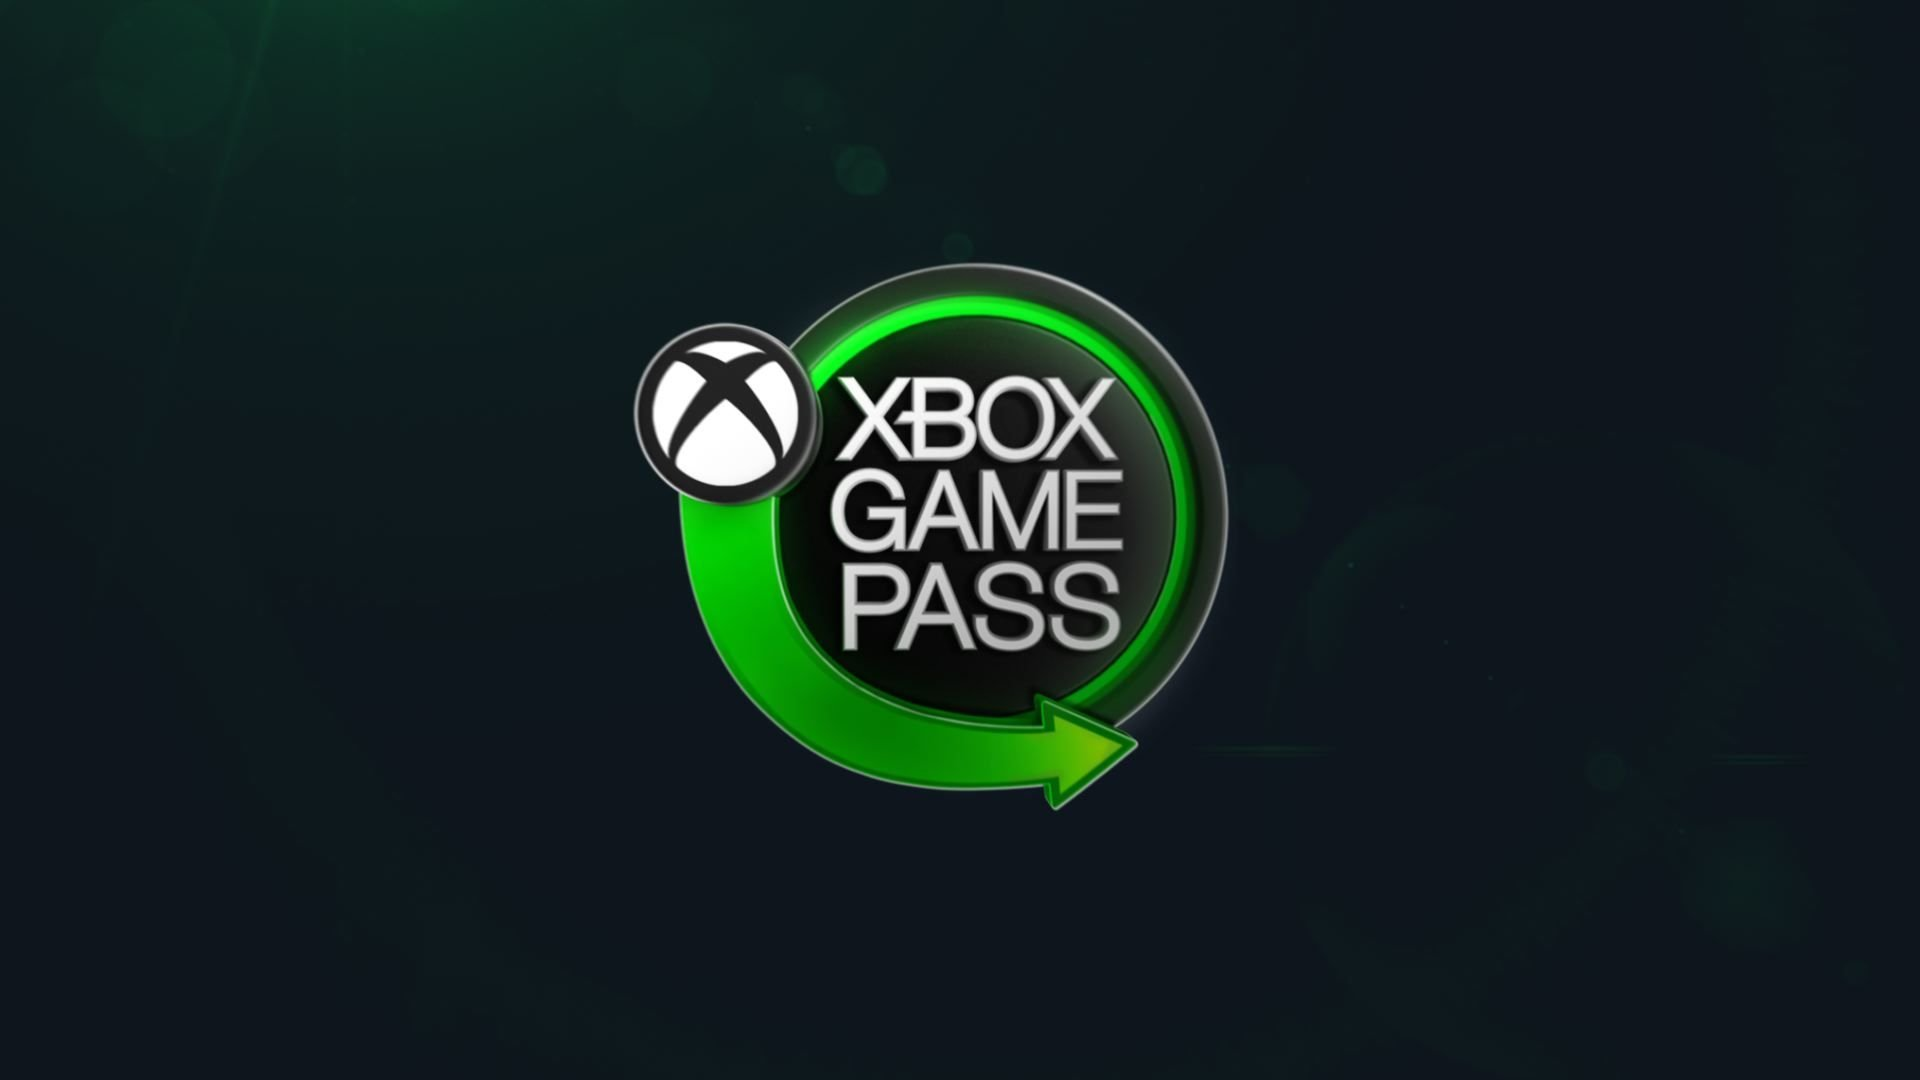 This Xbox Game Pass music video is unbelievable | Core Xbox